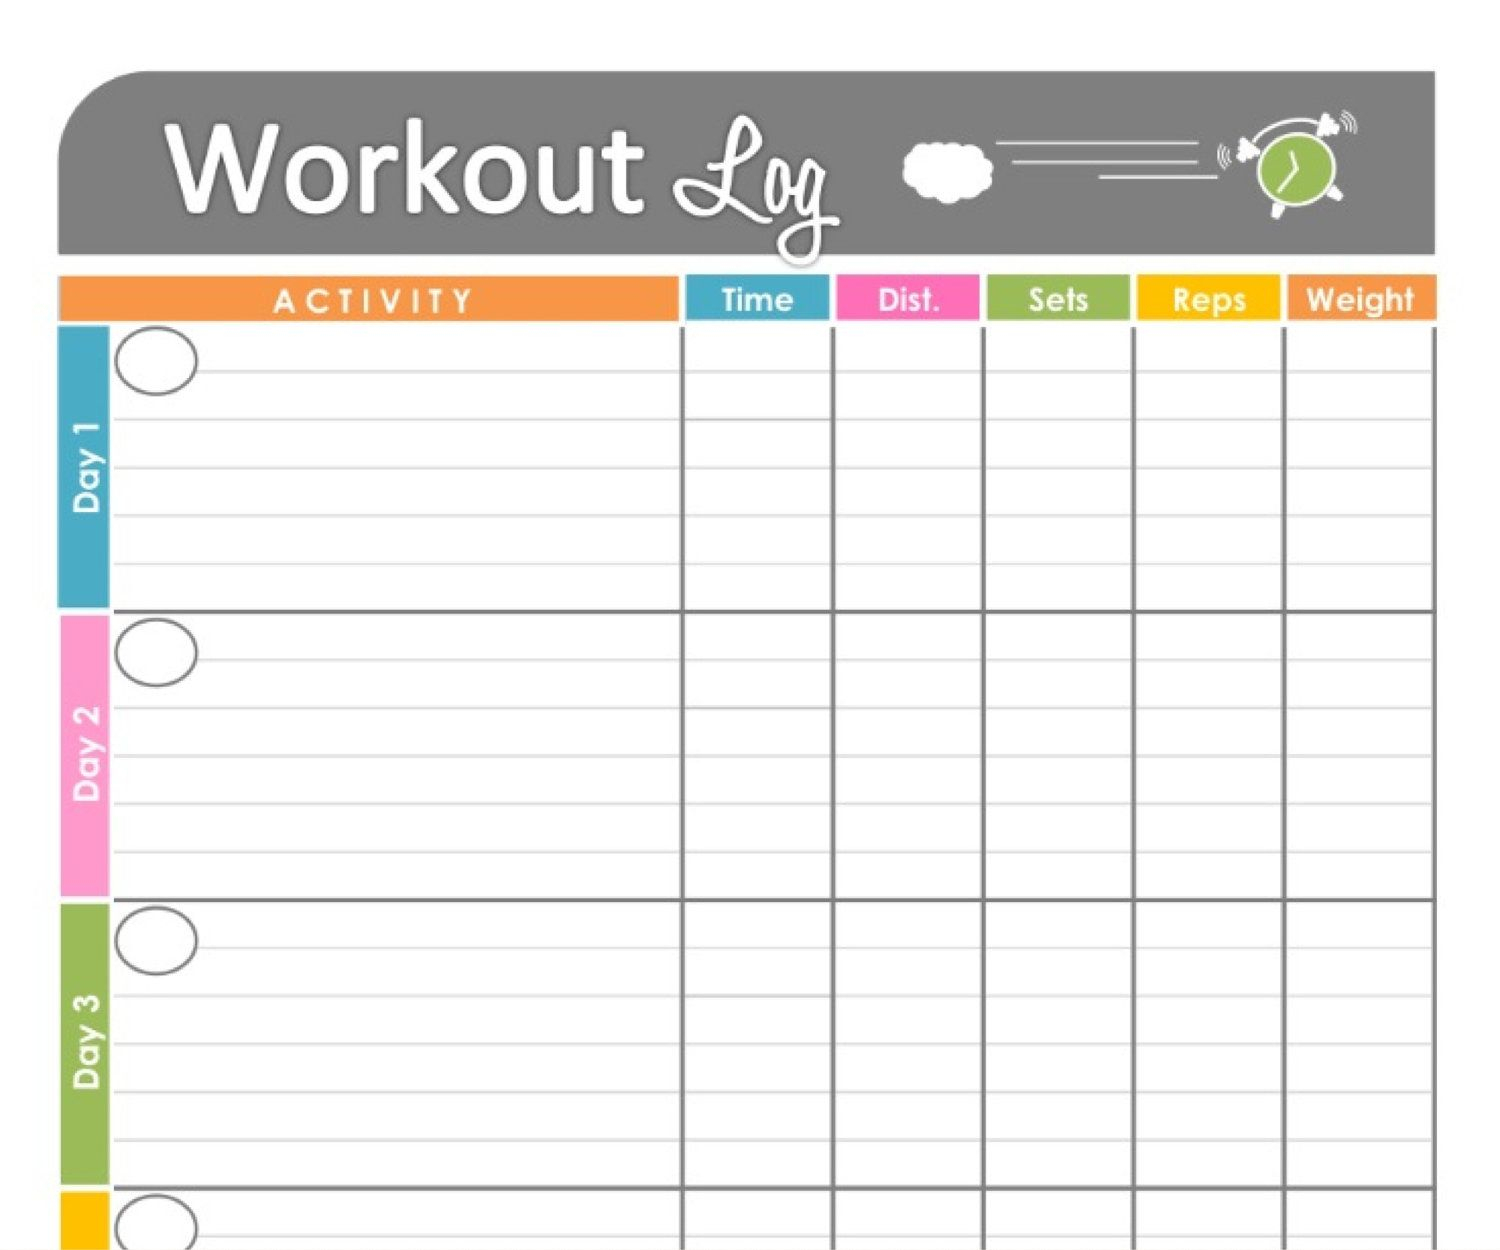 Workout Log Exercise Log Printable Forfreshandorganized, $3.50 - Free Printable Fitness Log